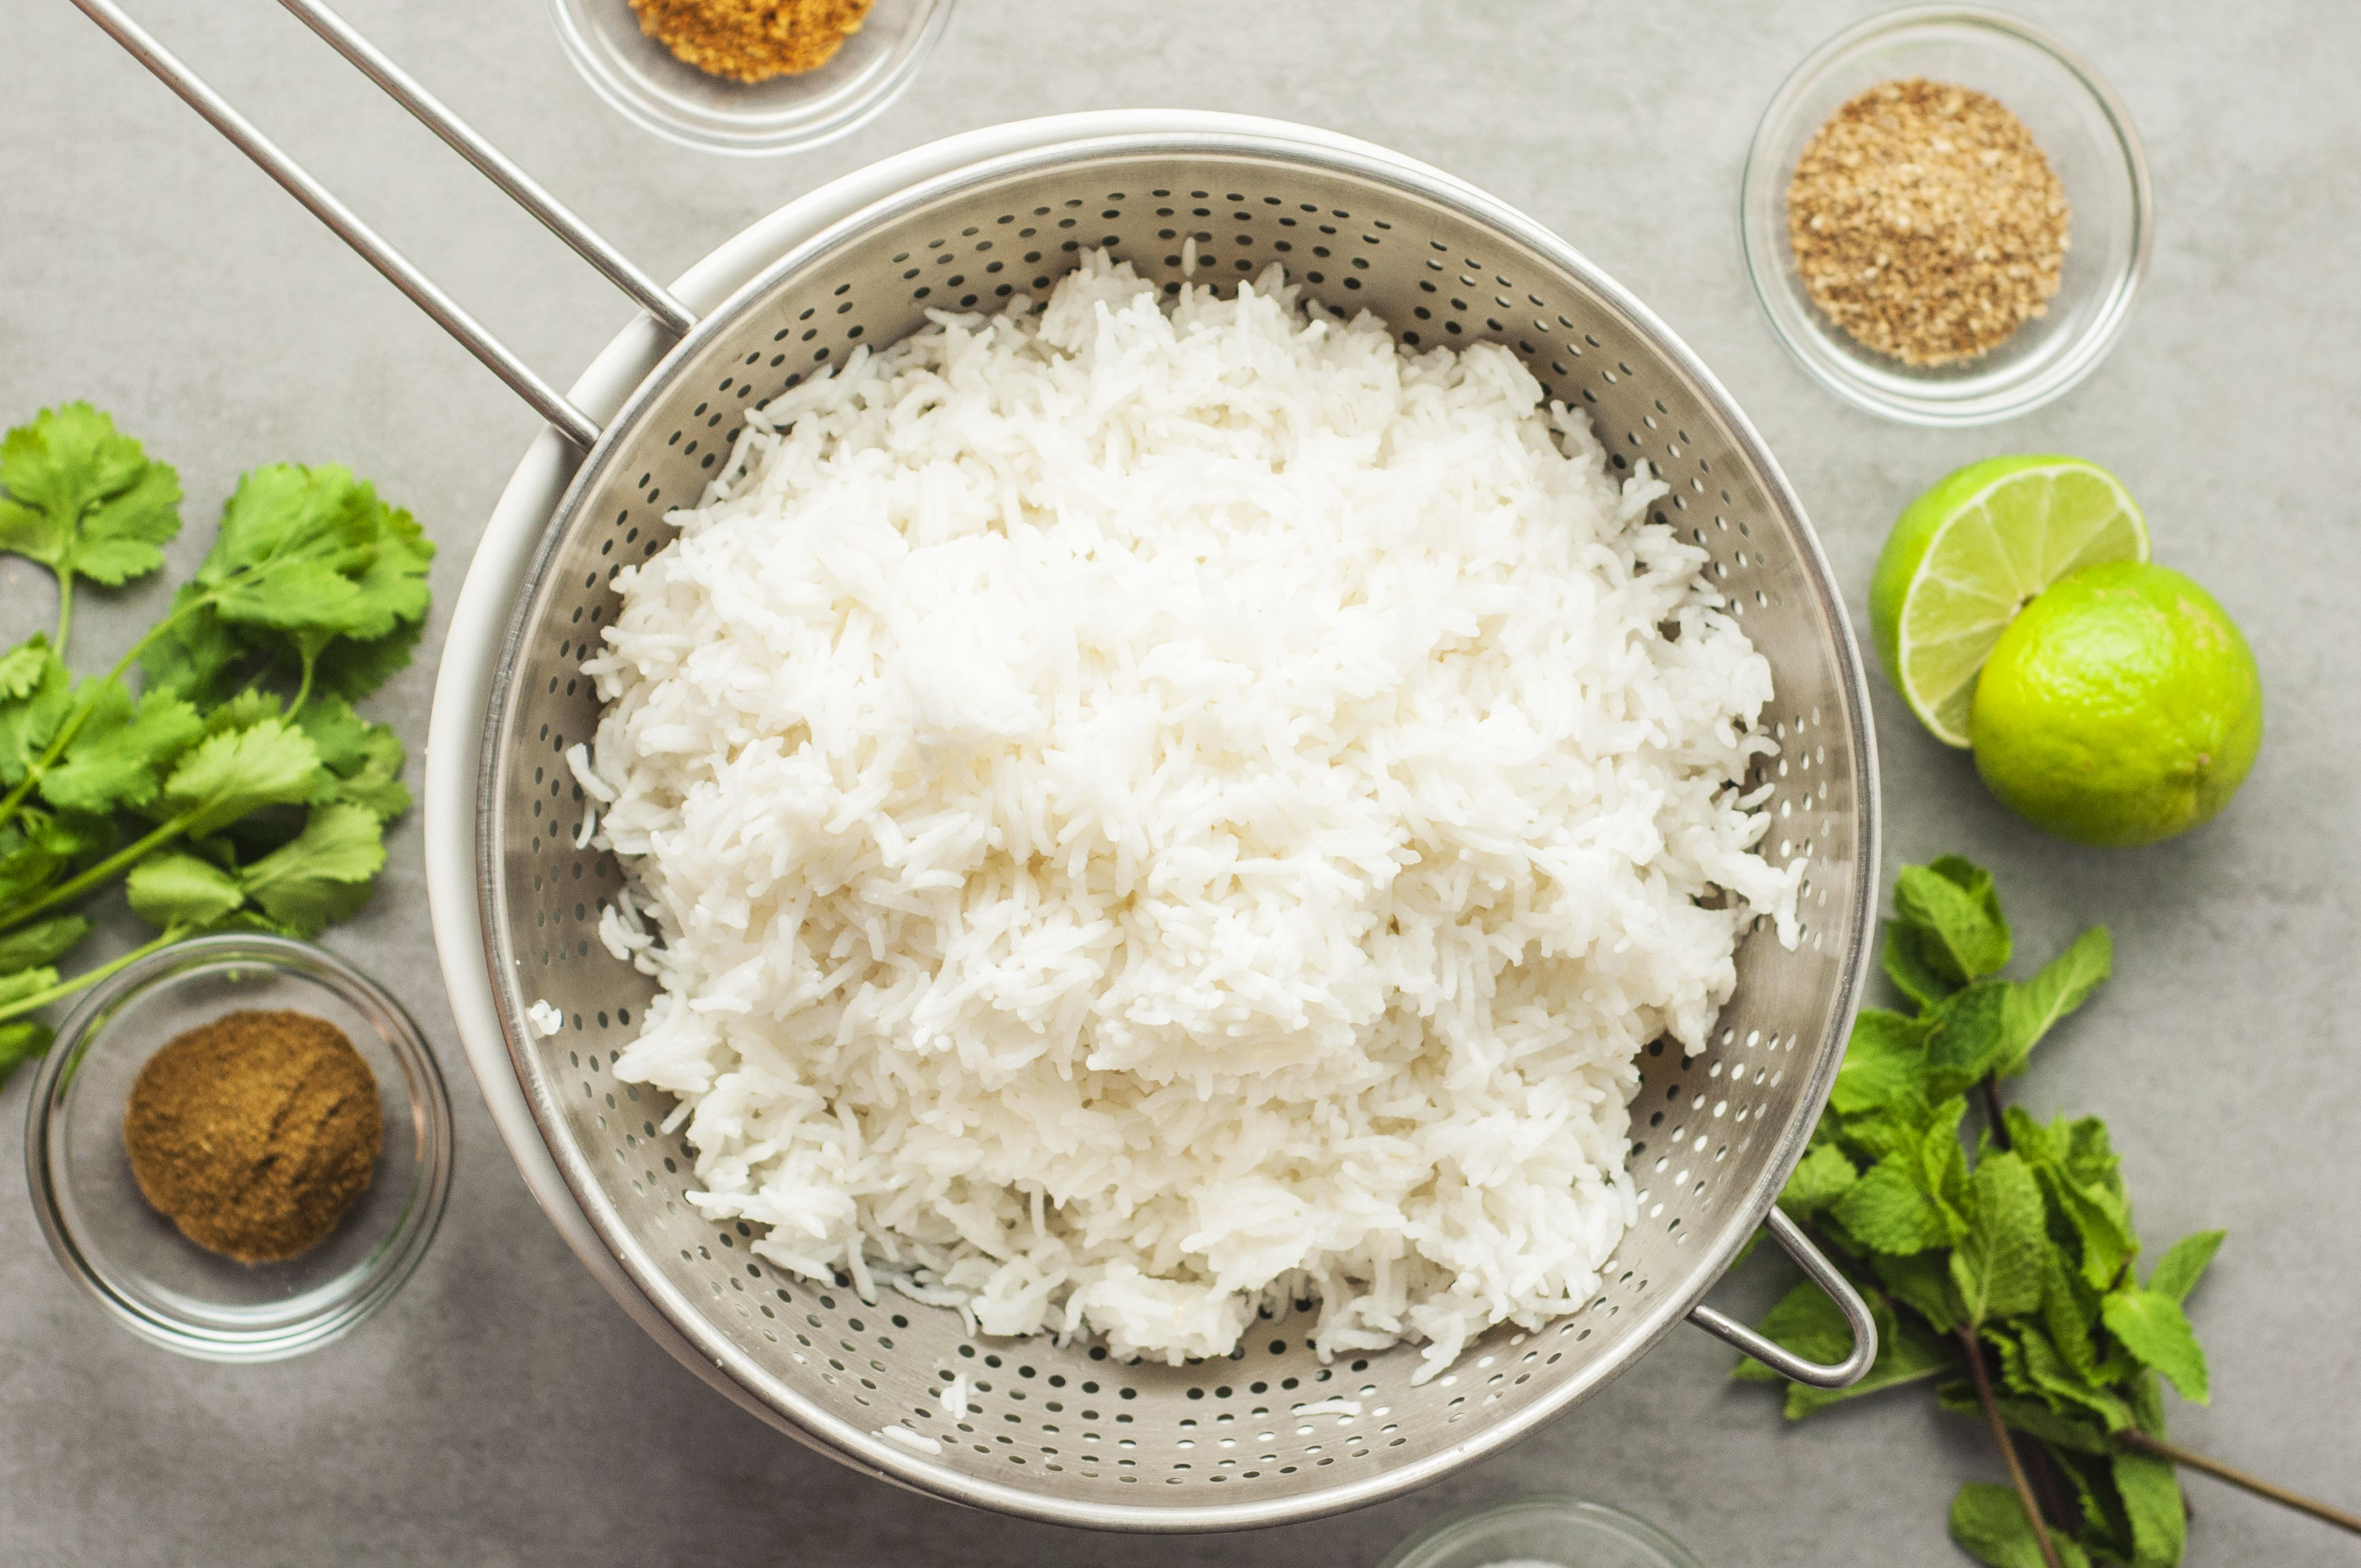 Strain rice and set aside